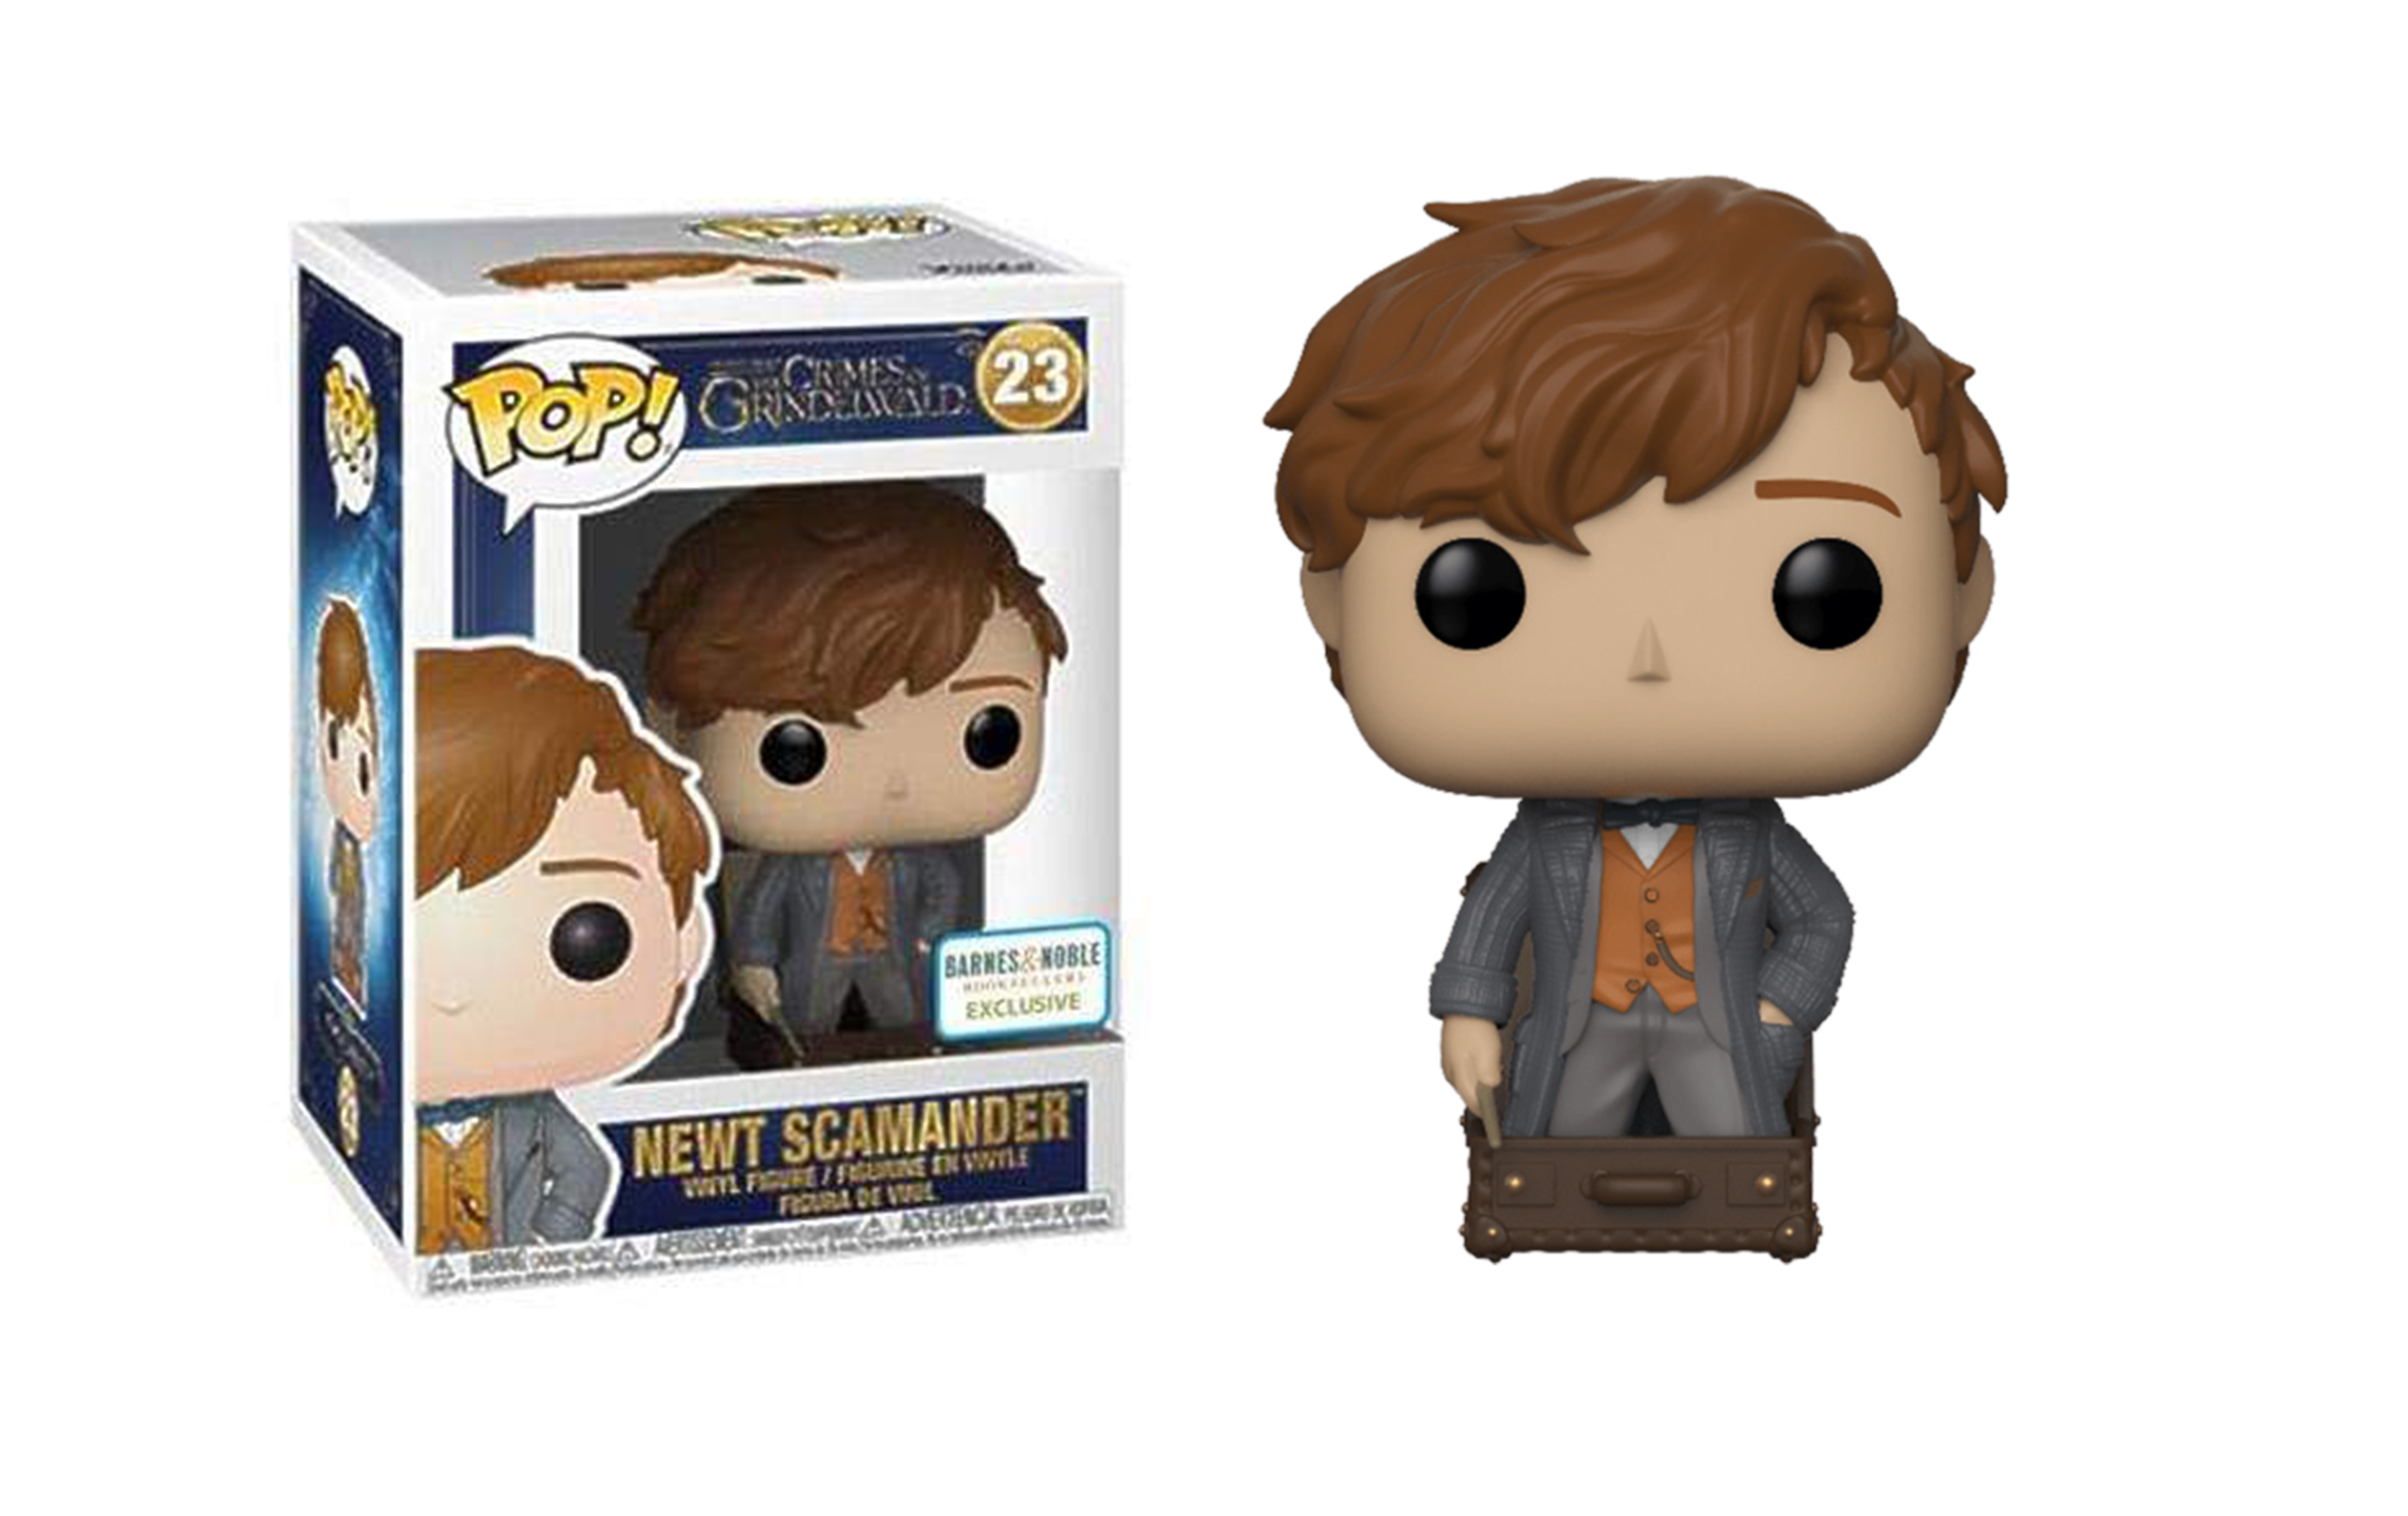 Fantastic Beast 2 Newt Scamander Barnes and Noble 23 Funko POP Vinyl Figure